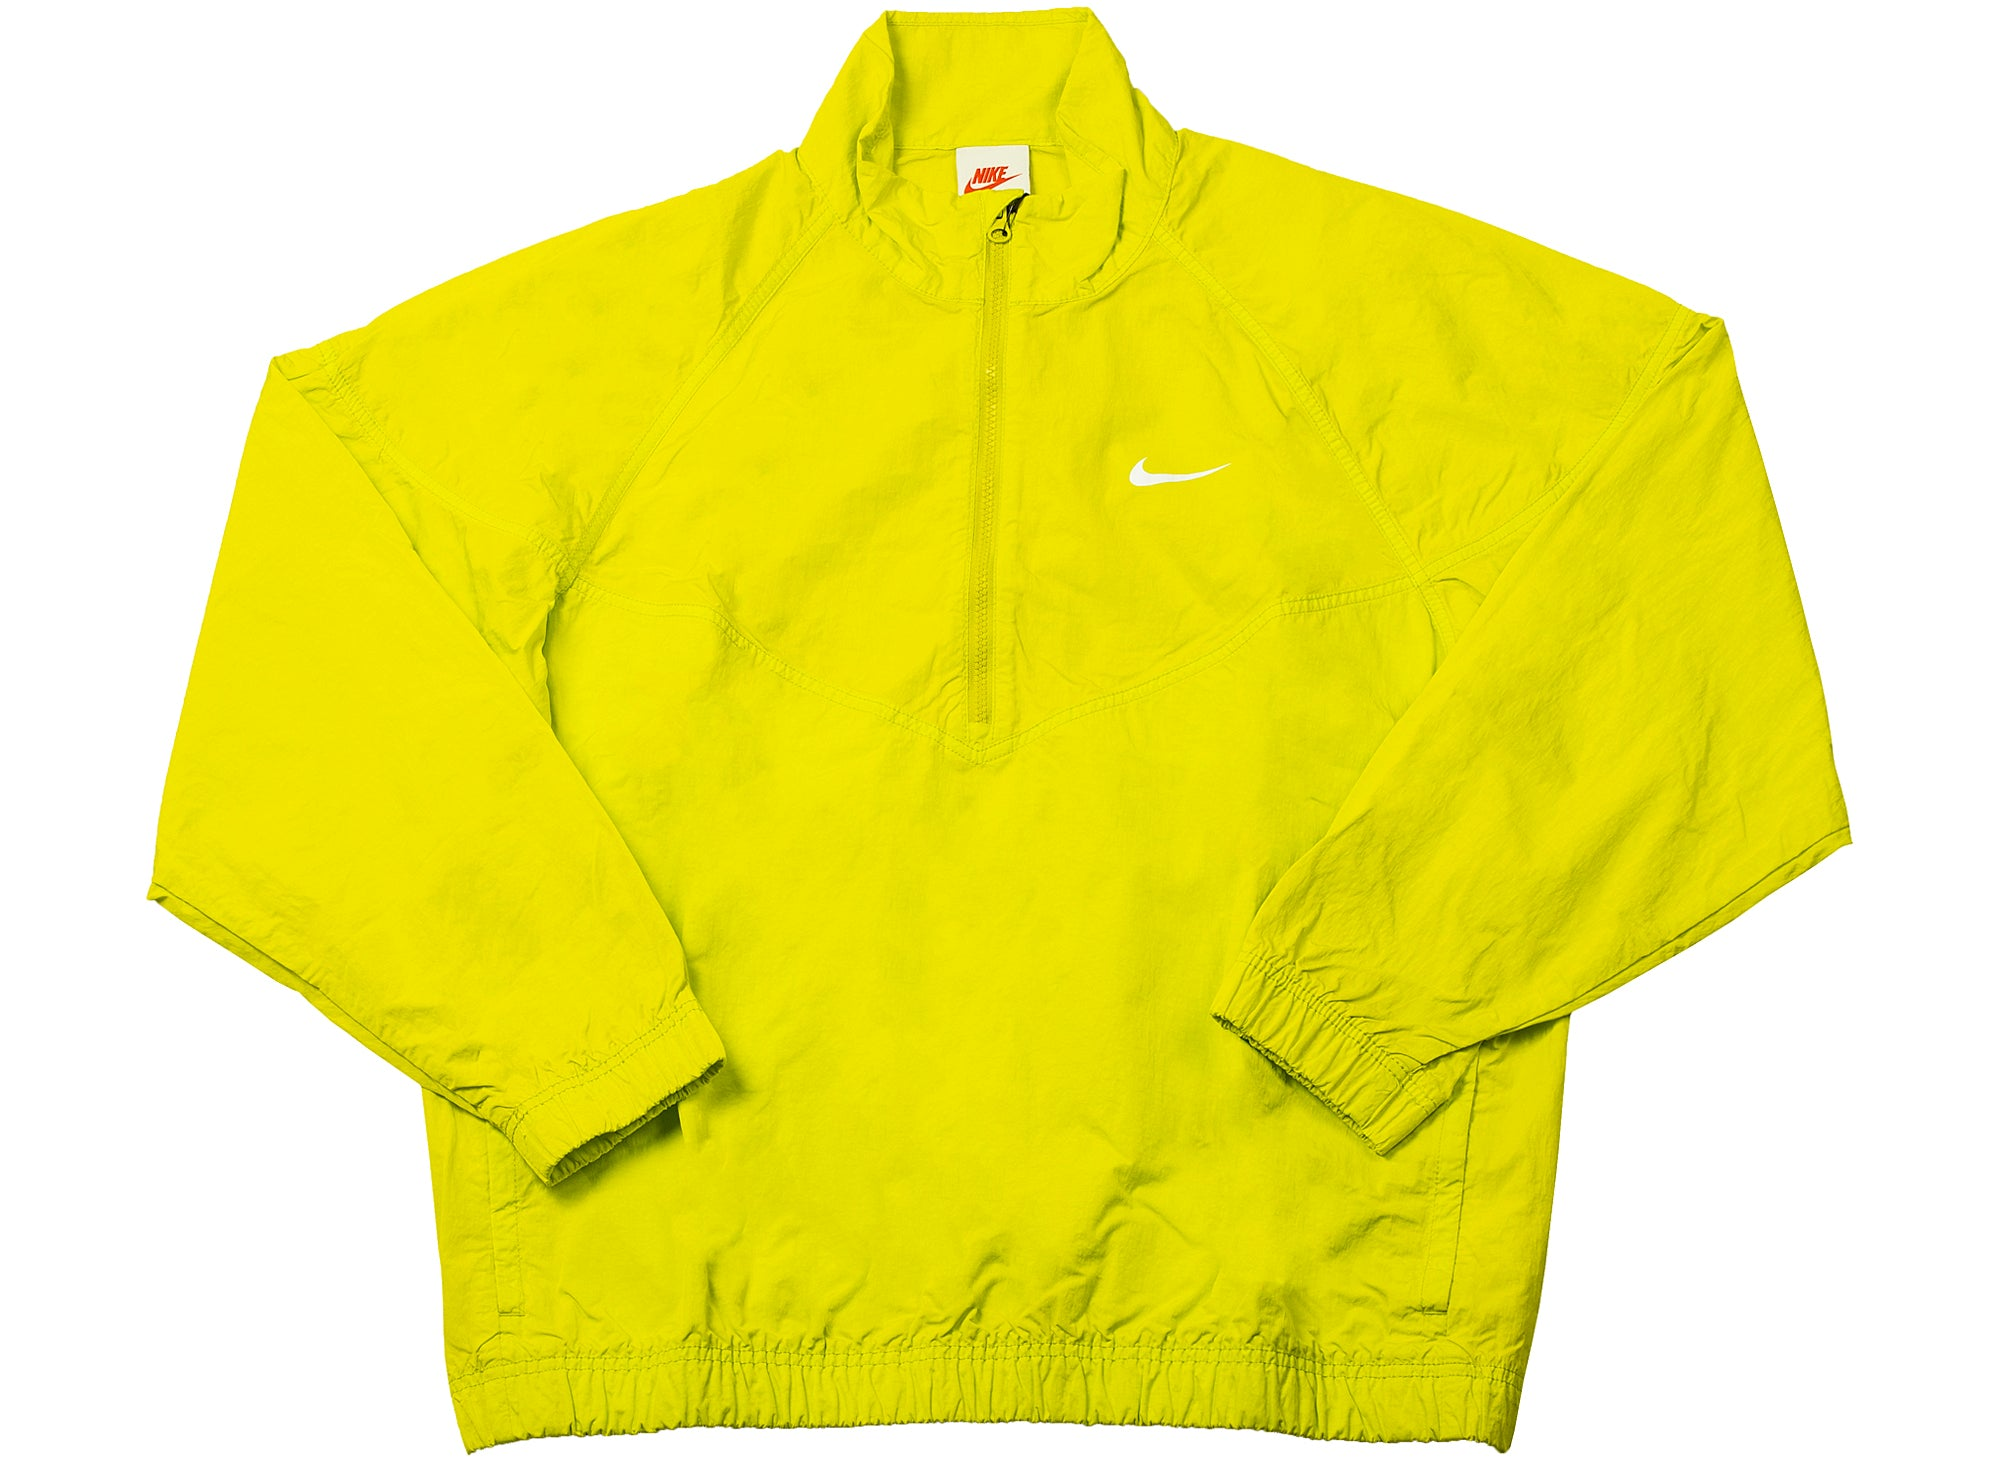 Nike x Stüssy Windrunner Jacket in Lime xld